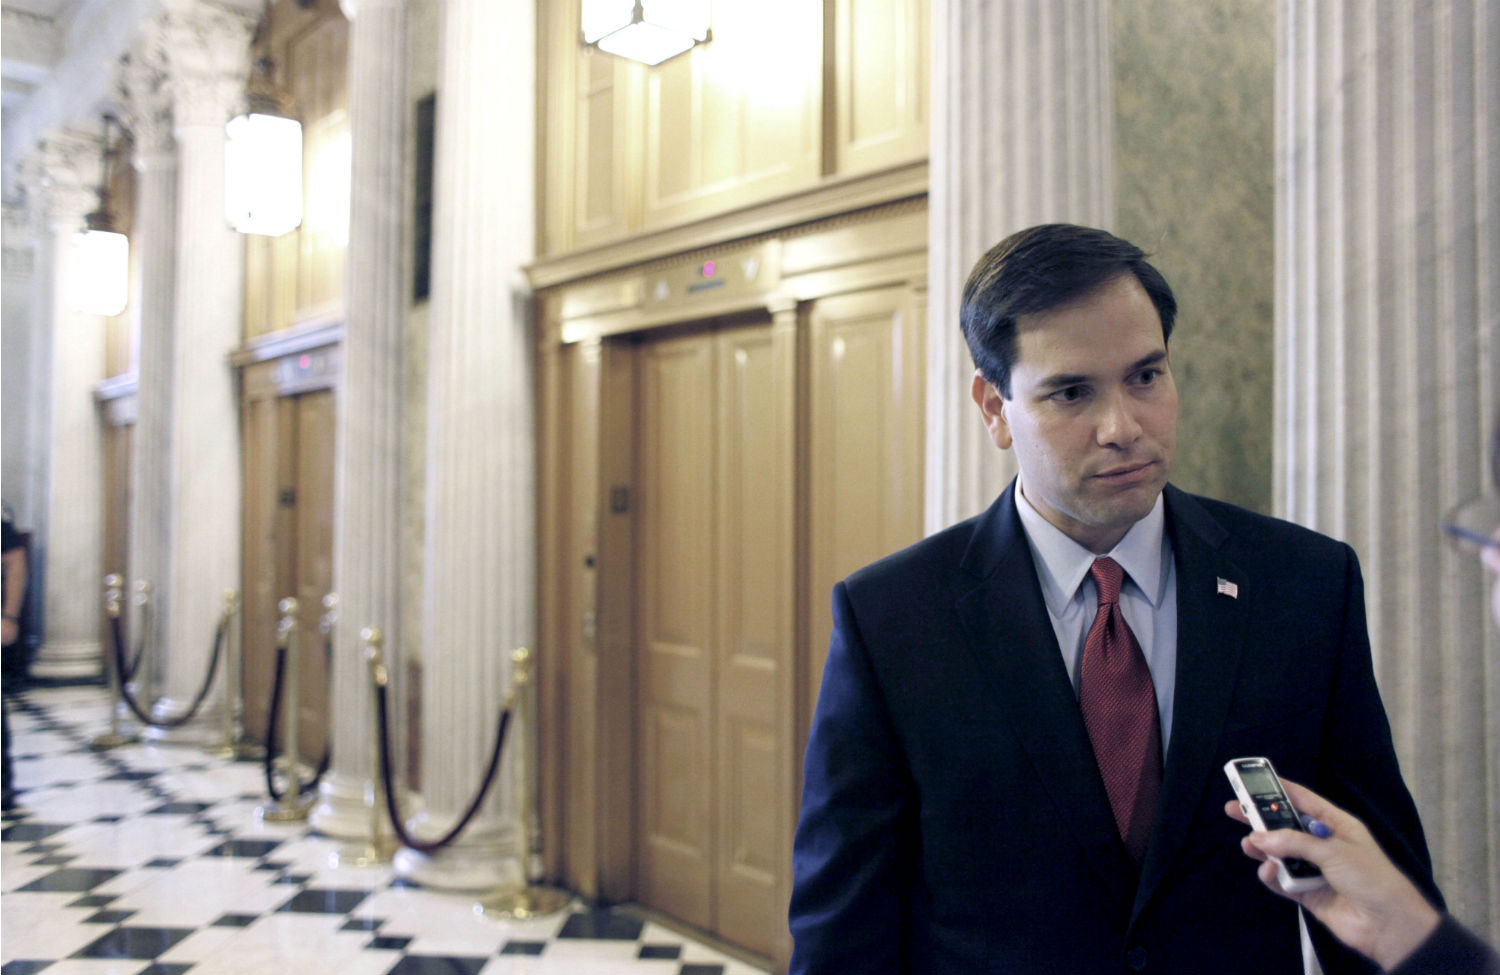 Marco-Rubio-speaks-with-a-reporter-outside-of-the-Senate-Chamber-on-Capitol-Hill.-AP-PhotoHarry-Hamburg